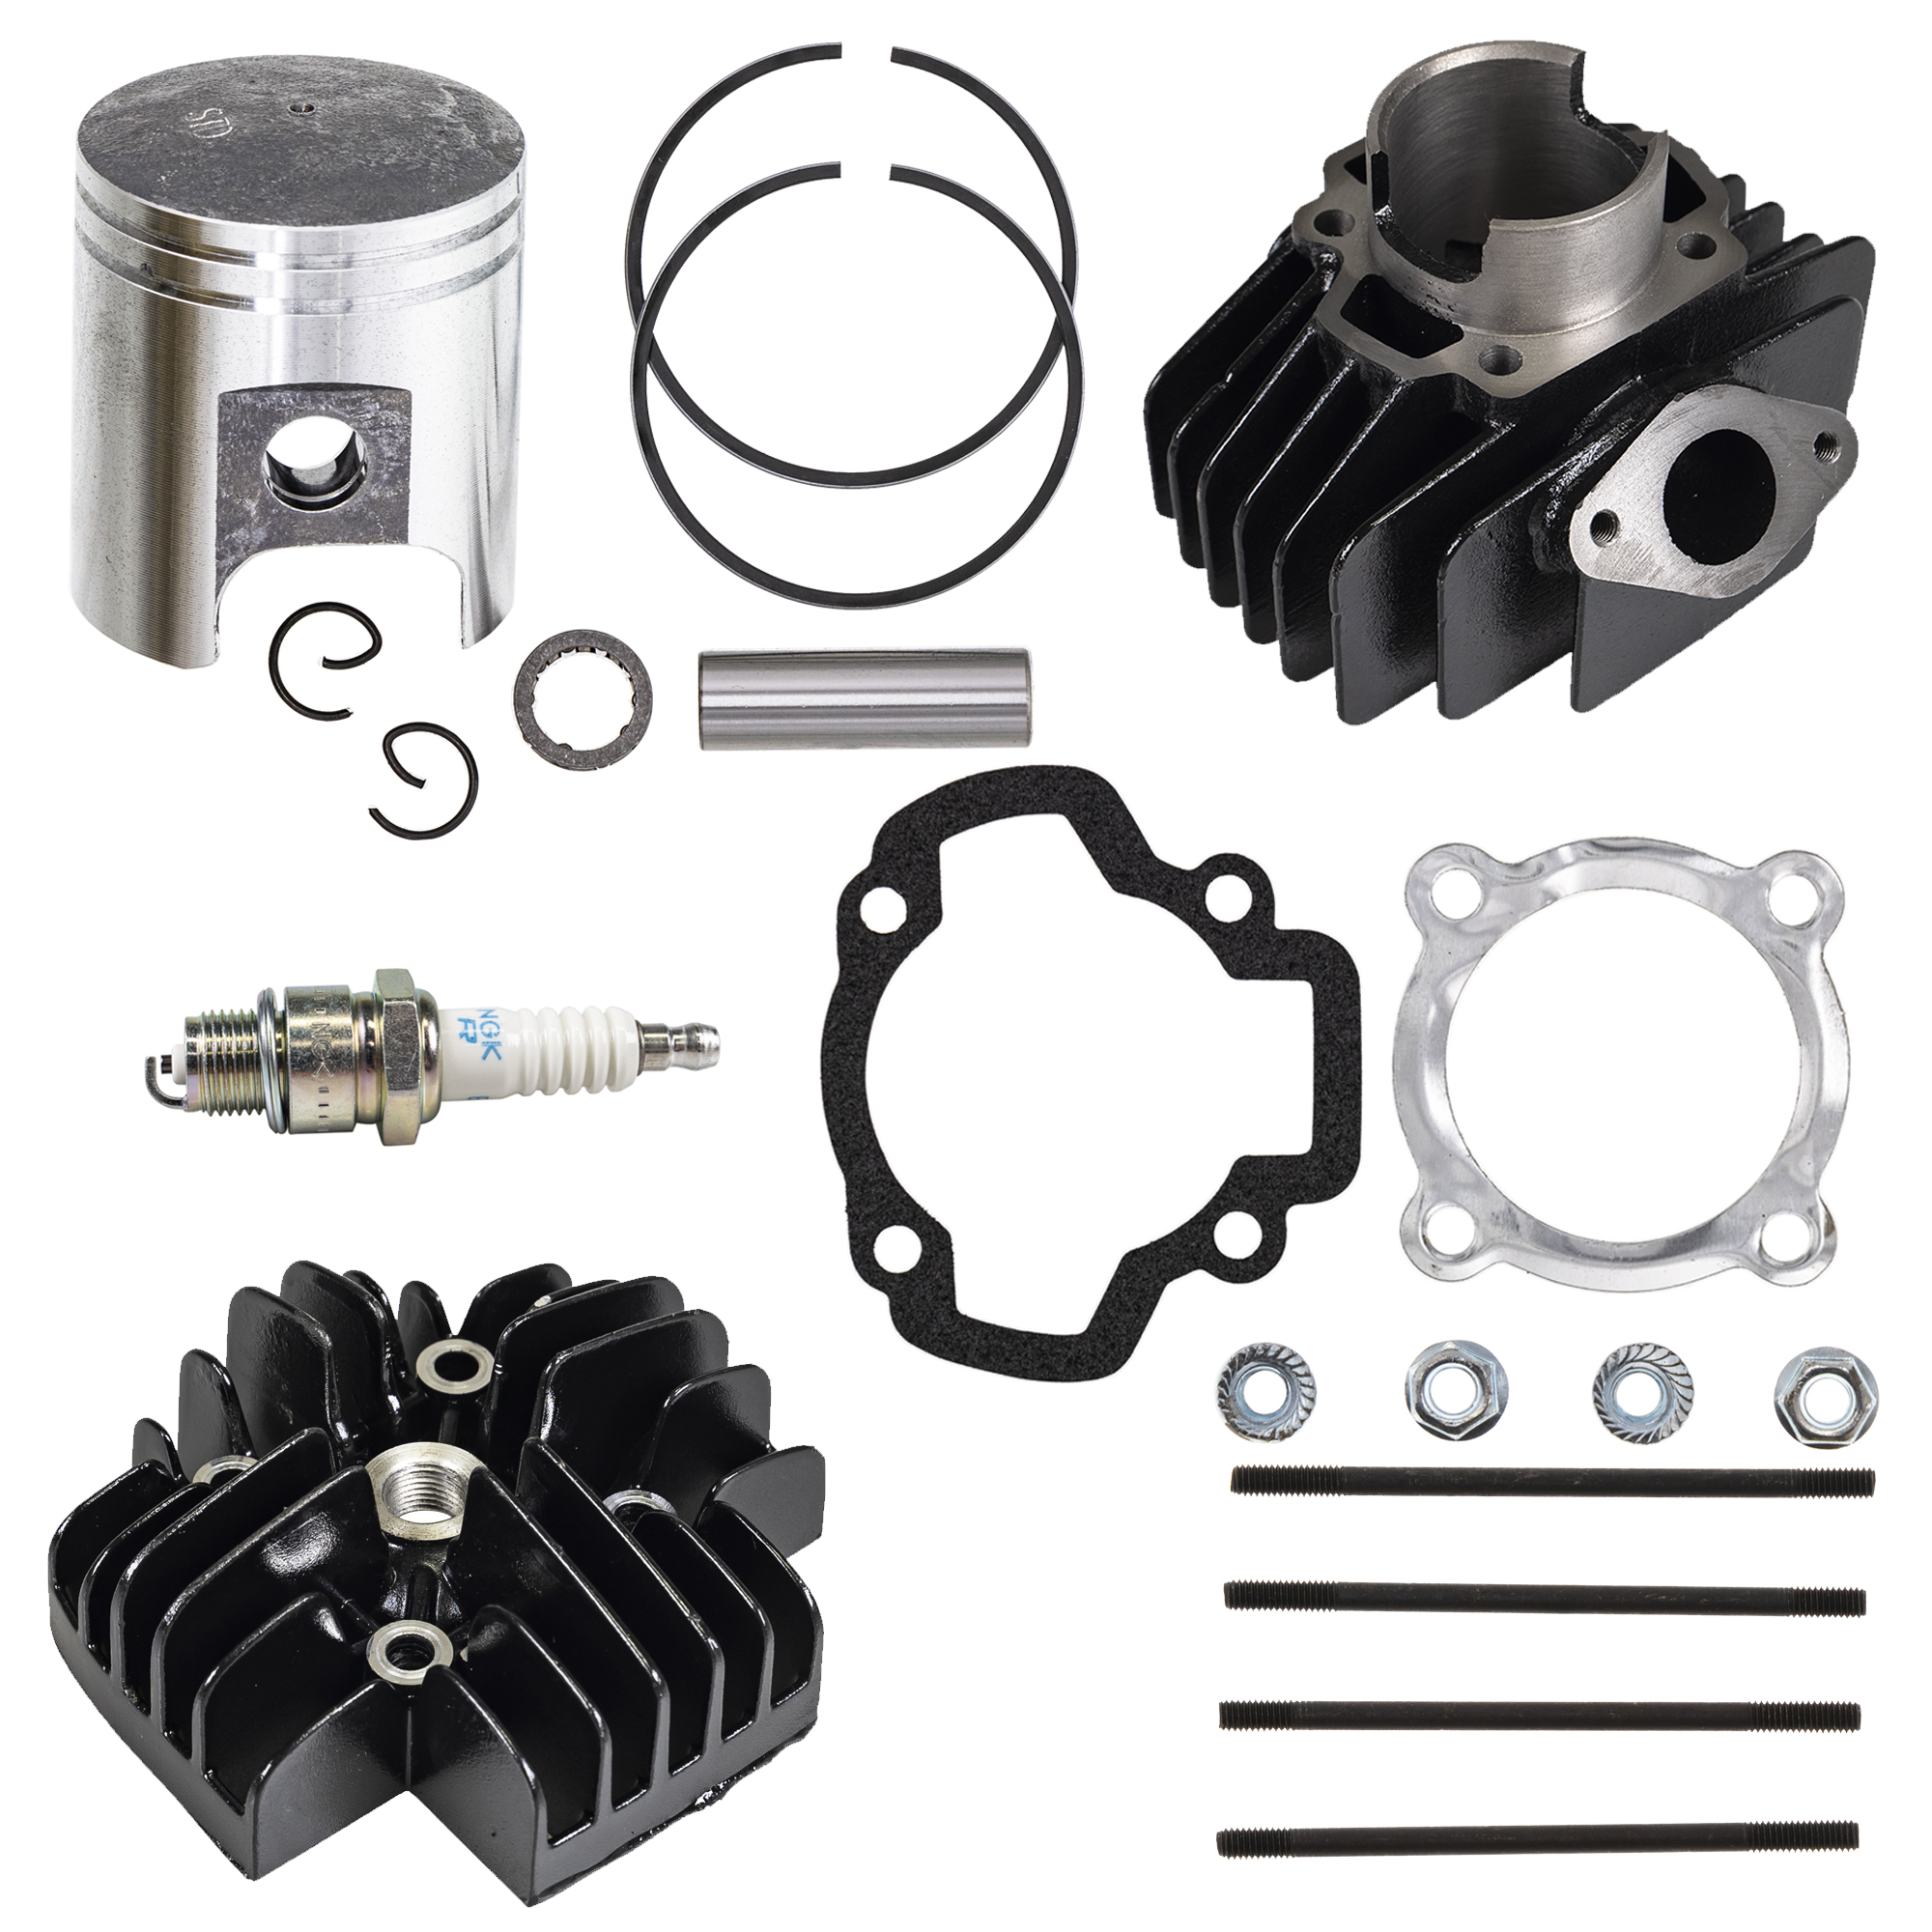 FIT FOR Yamaha PW50 Bore Cylinder Piston Rings Gasket Head Top End Kit 1981-2017